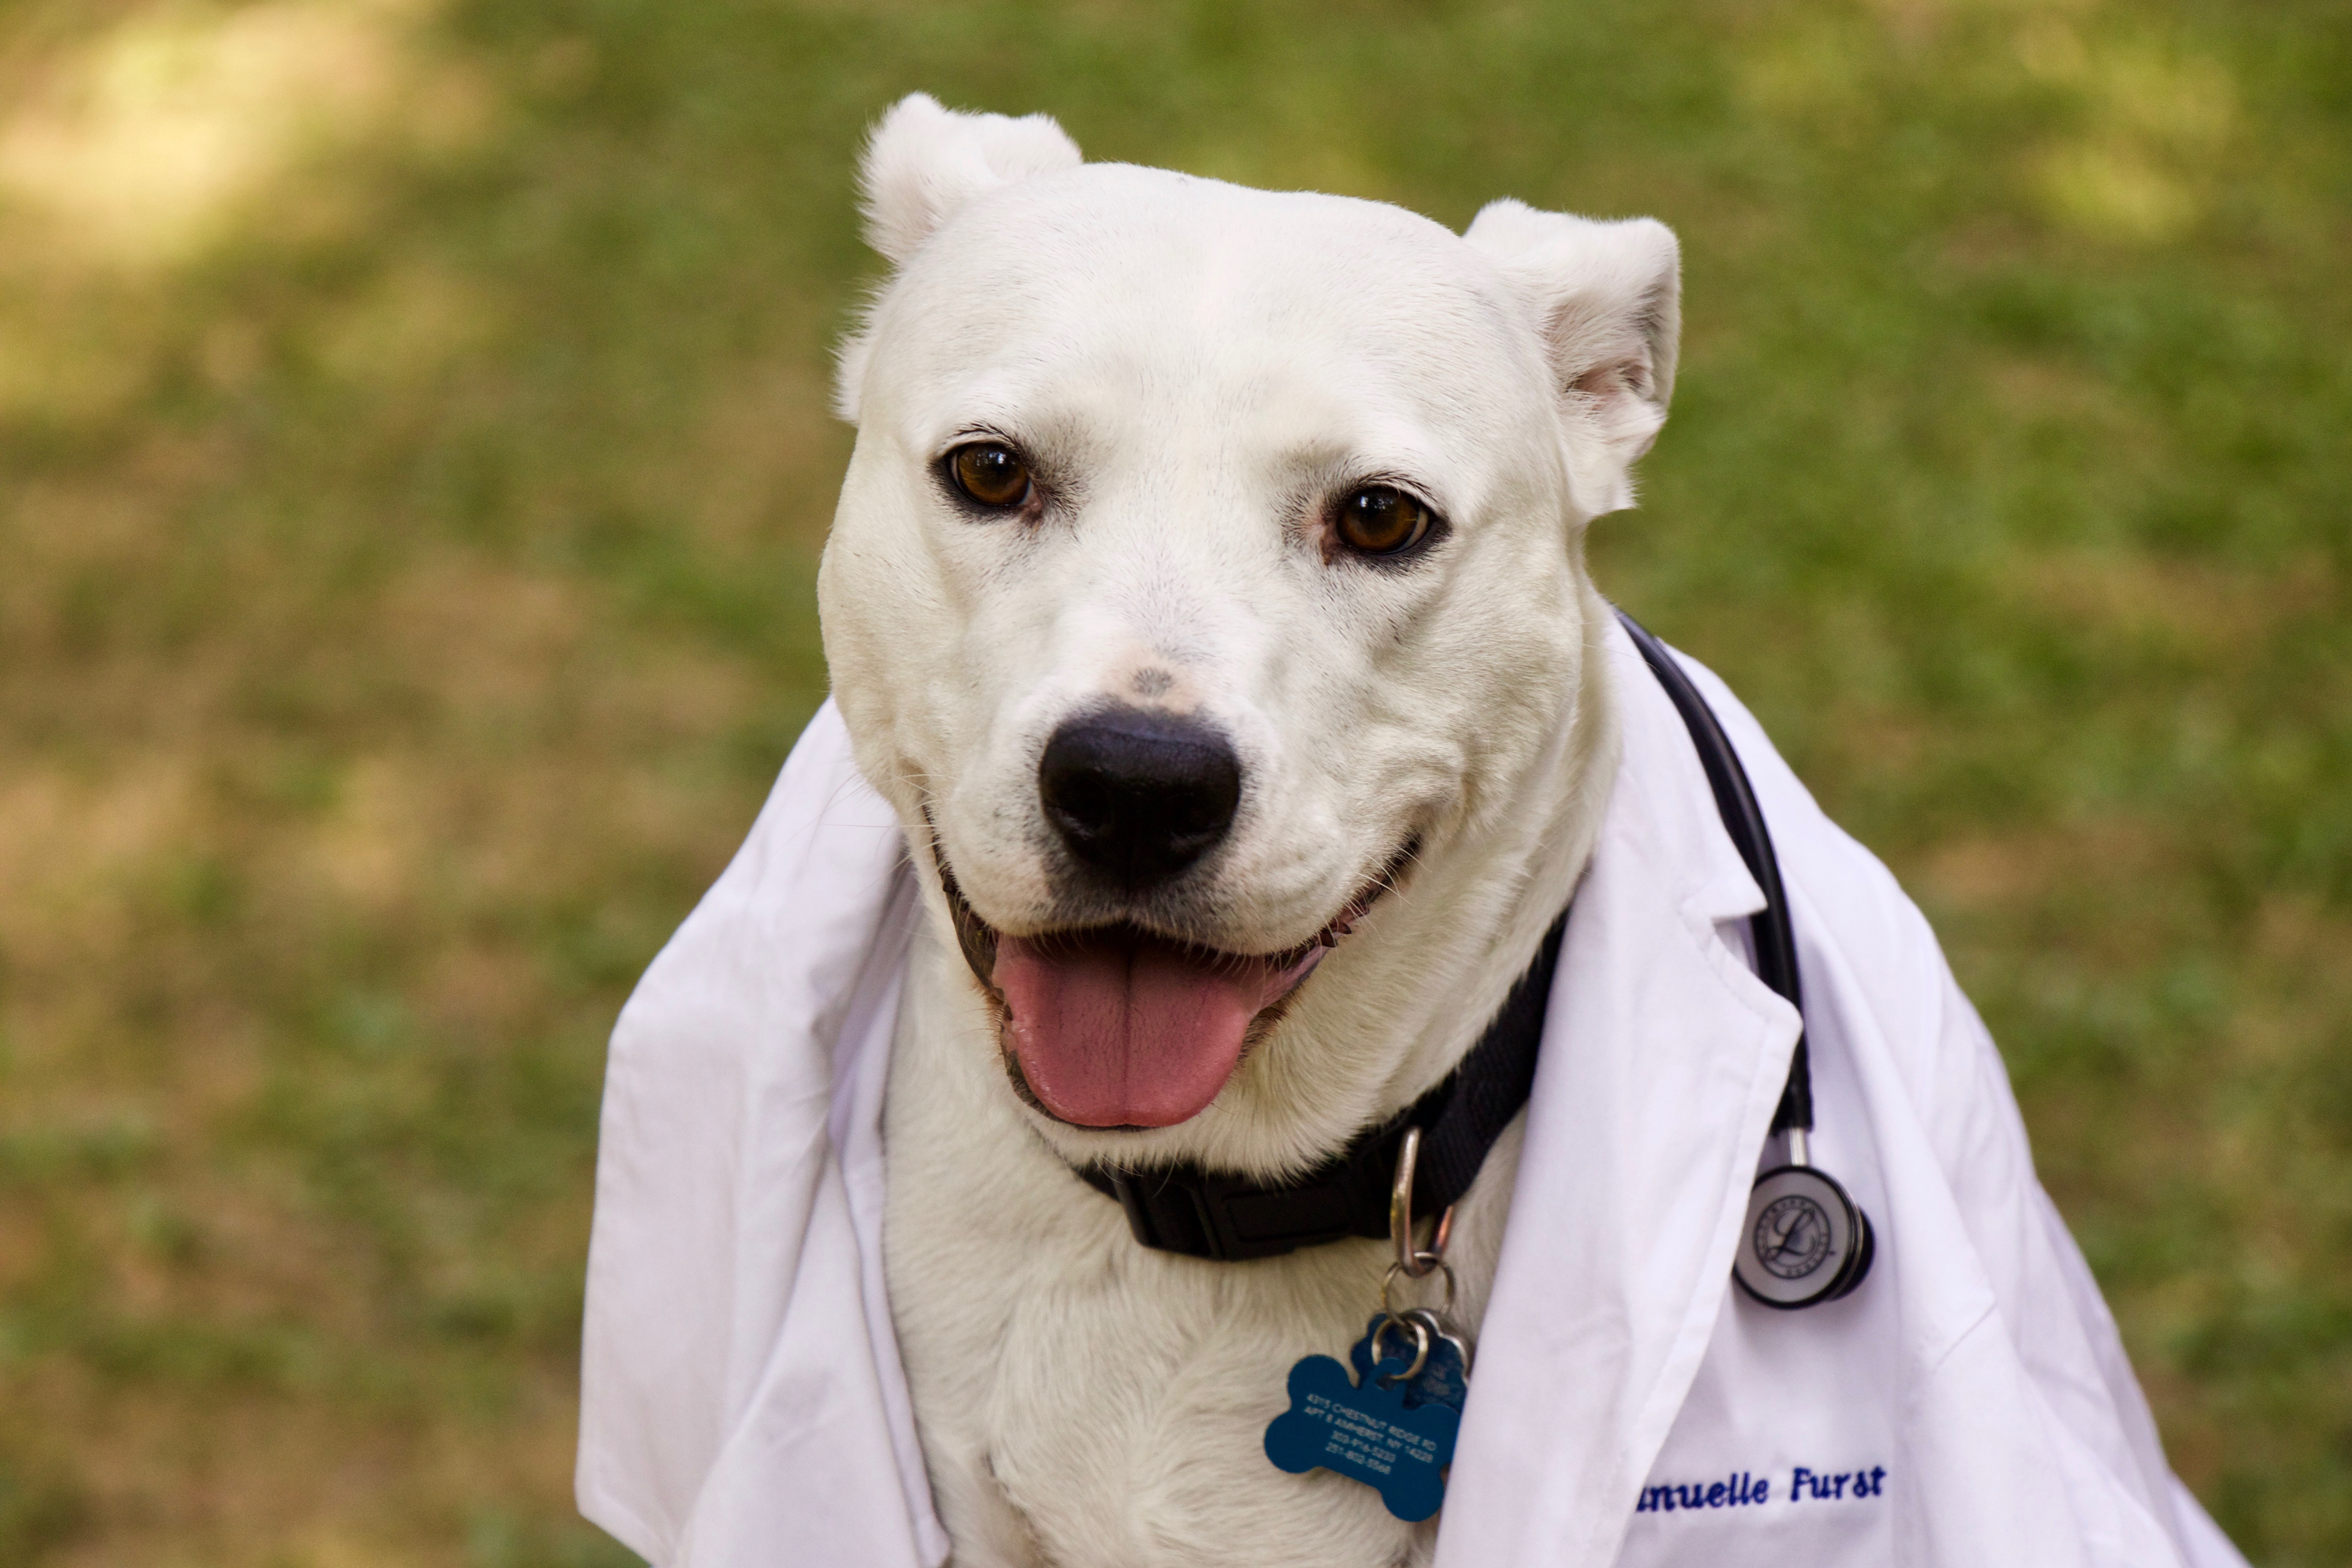 All Creatures Animal Hospital  reviews | Arts & Entertainment at 6429 Transit Road - East Amherst NY